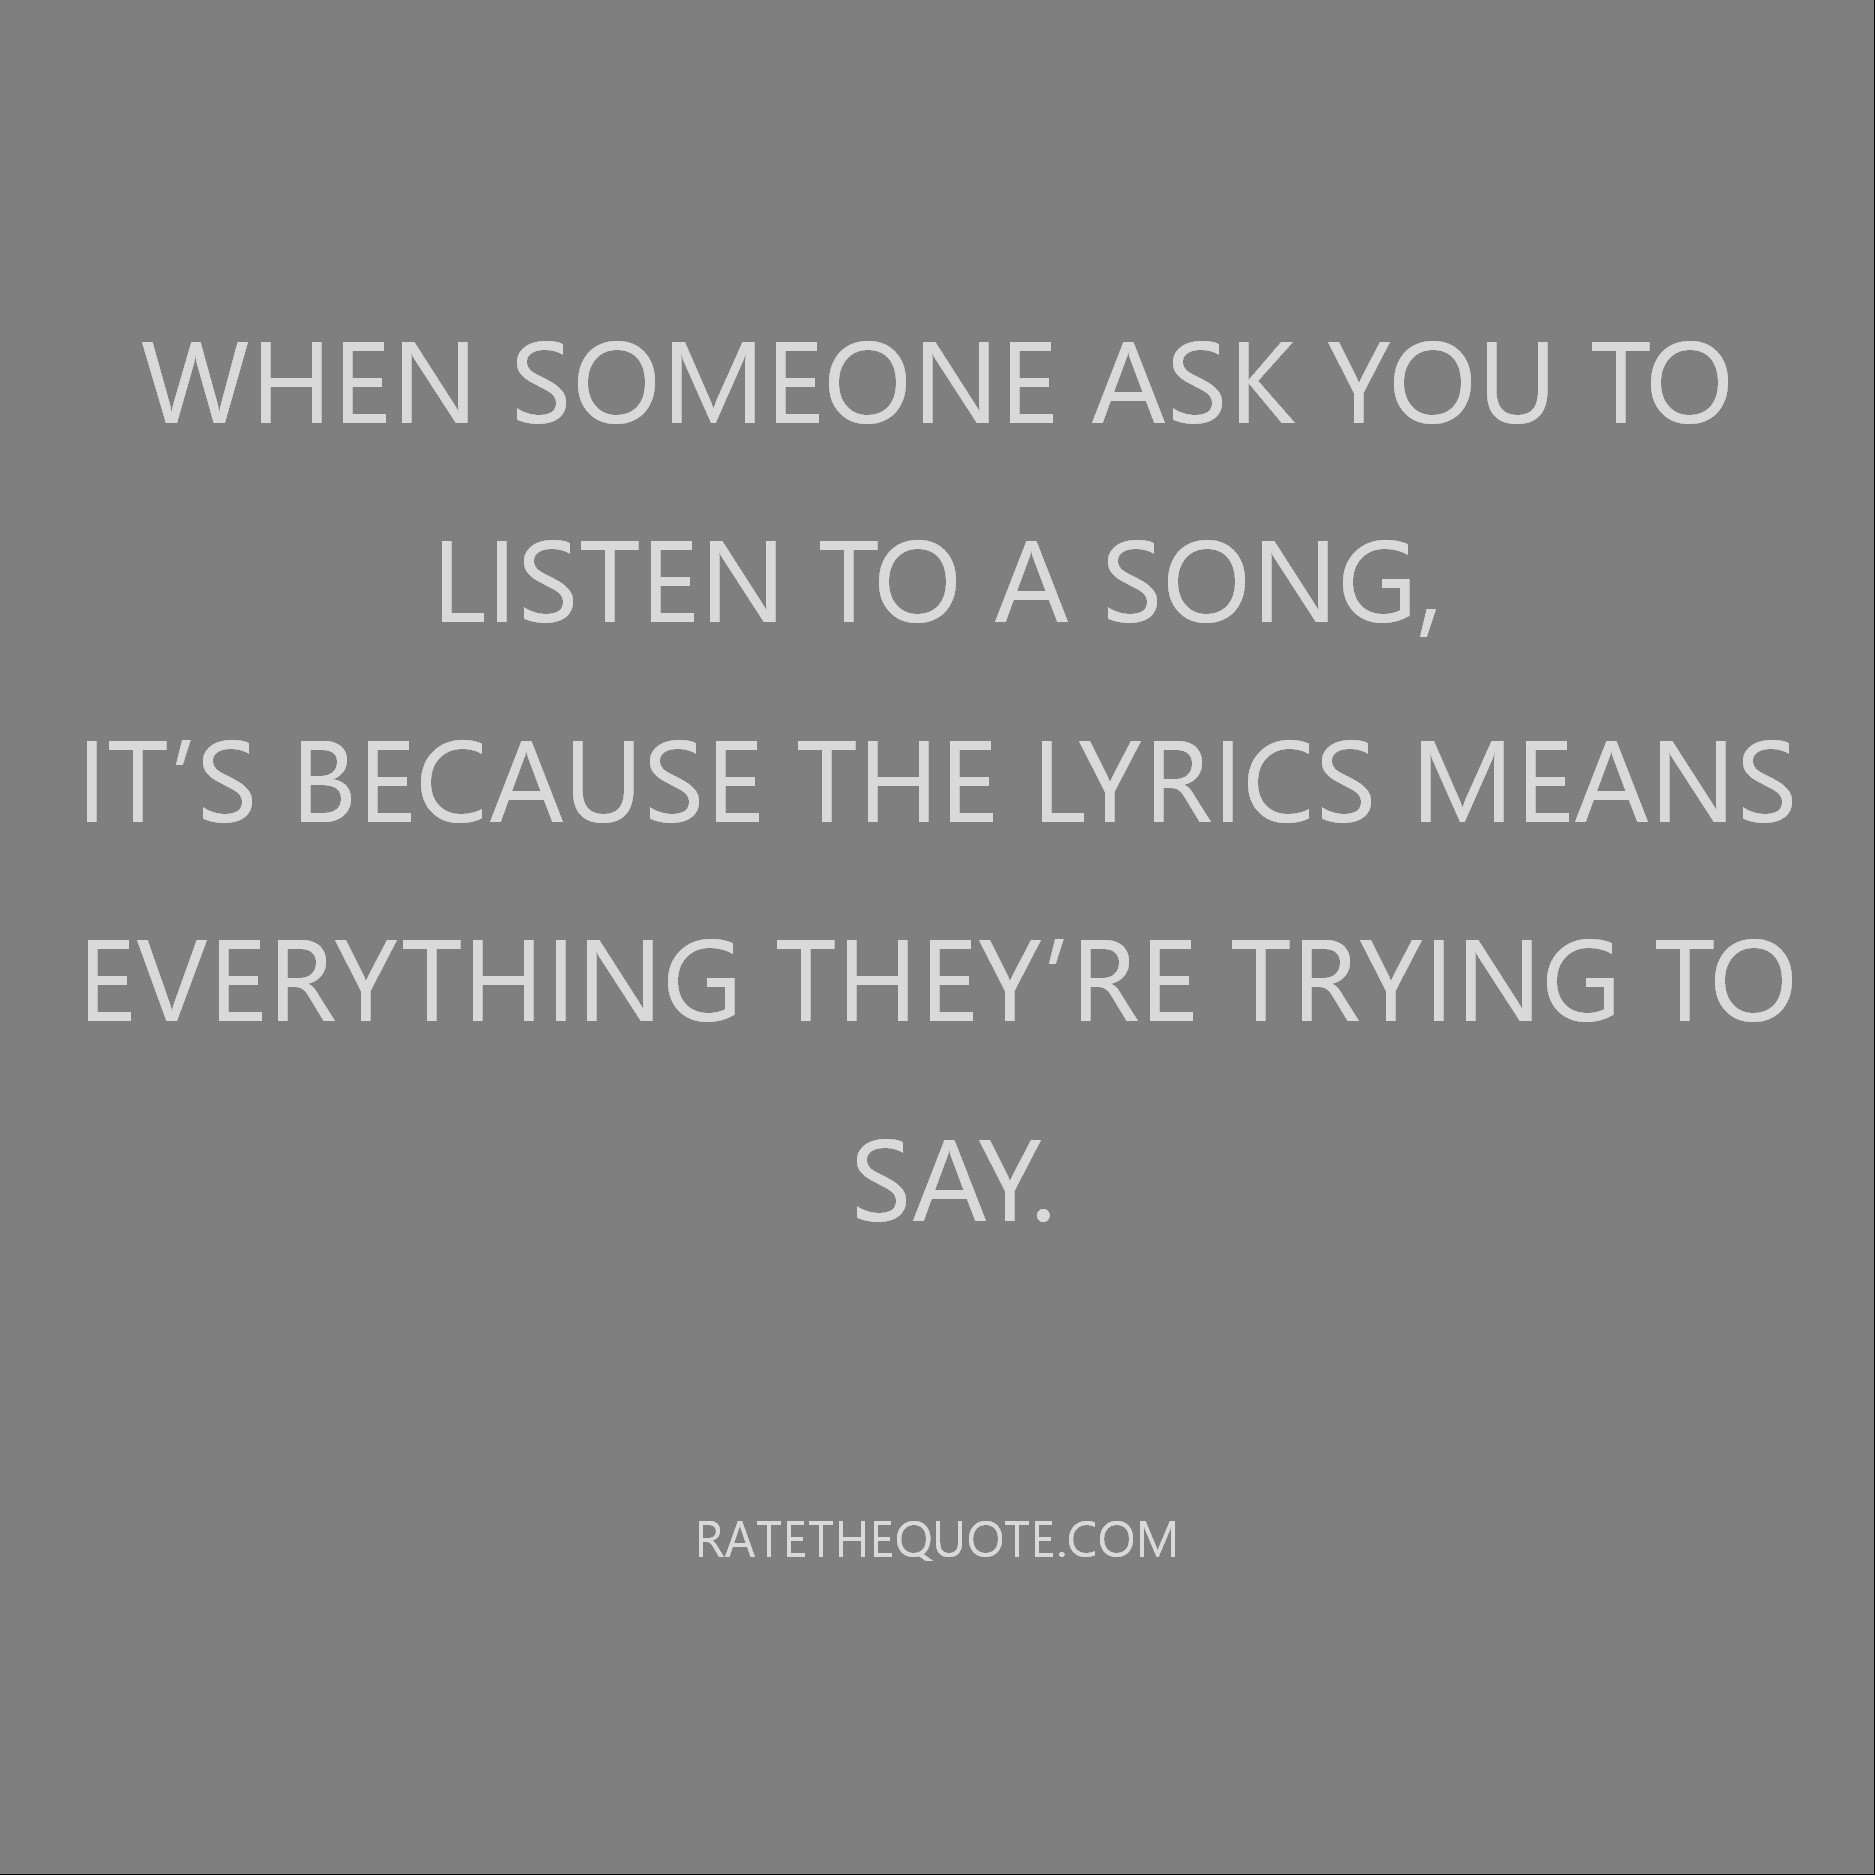 Quote When someone ask you to listen to a song, it's because the lyrics means everything they're trying to say.